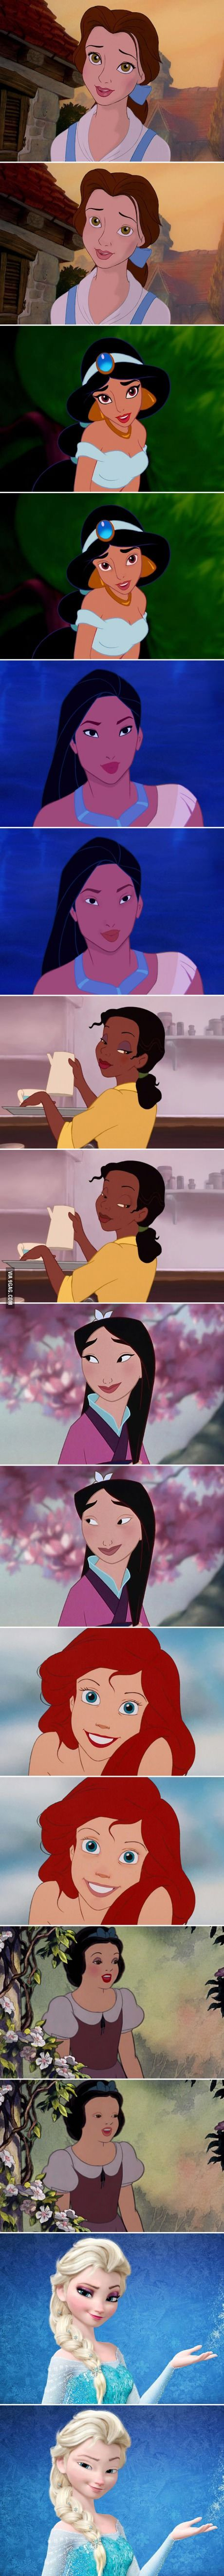 Here's What Disney Princesses Would Look Like Without Makeup